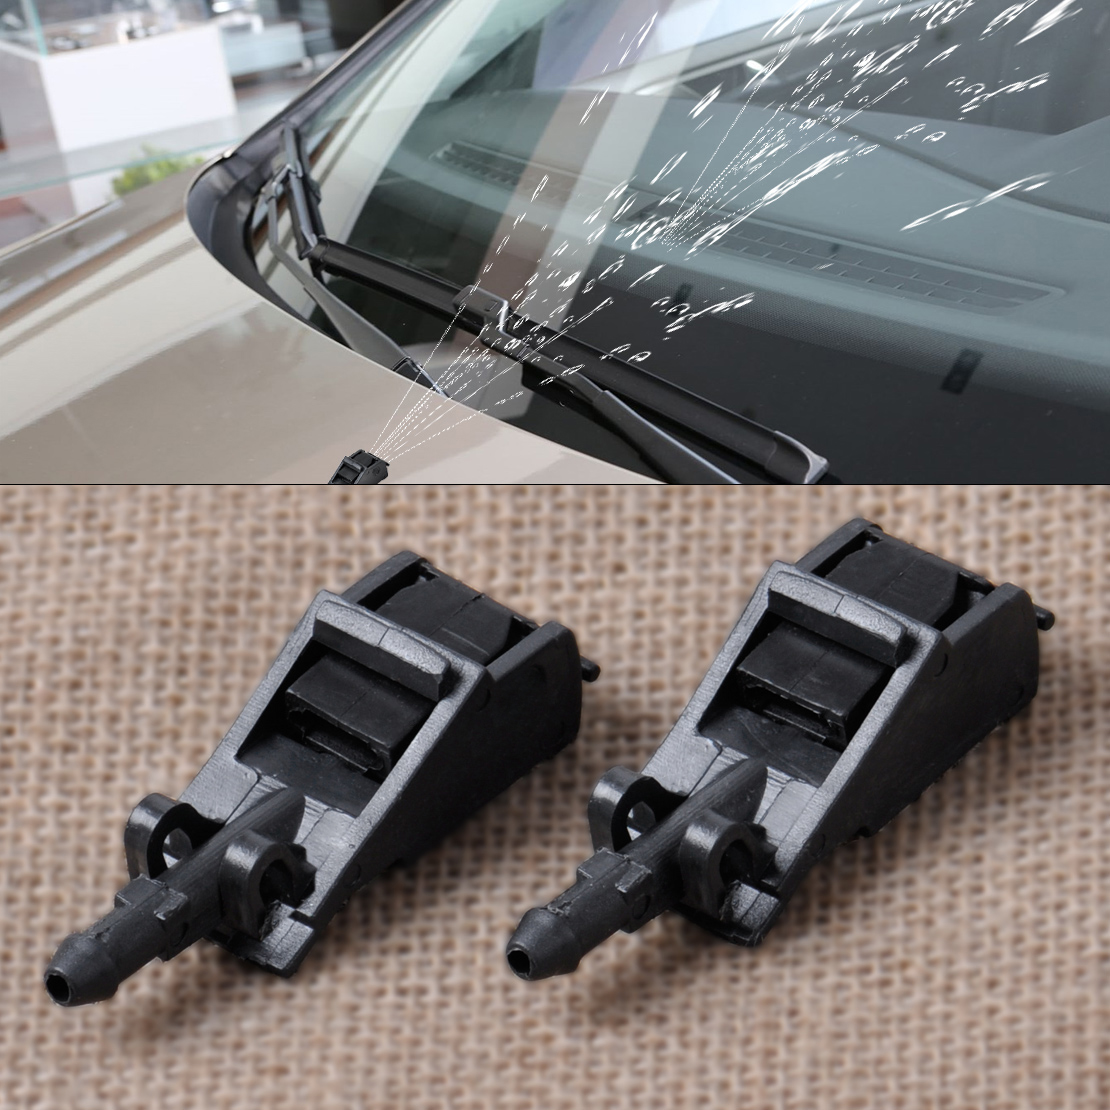 beler 2pcs Black Windscreen Washer Nozzle Jet Water Spray Nozzle For <font><b>VW</b></font> Beetle <font><b>Golf</b></font> Jetta Passat Touareg Rabbit <font><b>GTI</b></font> 6E0955985B image